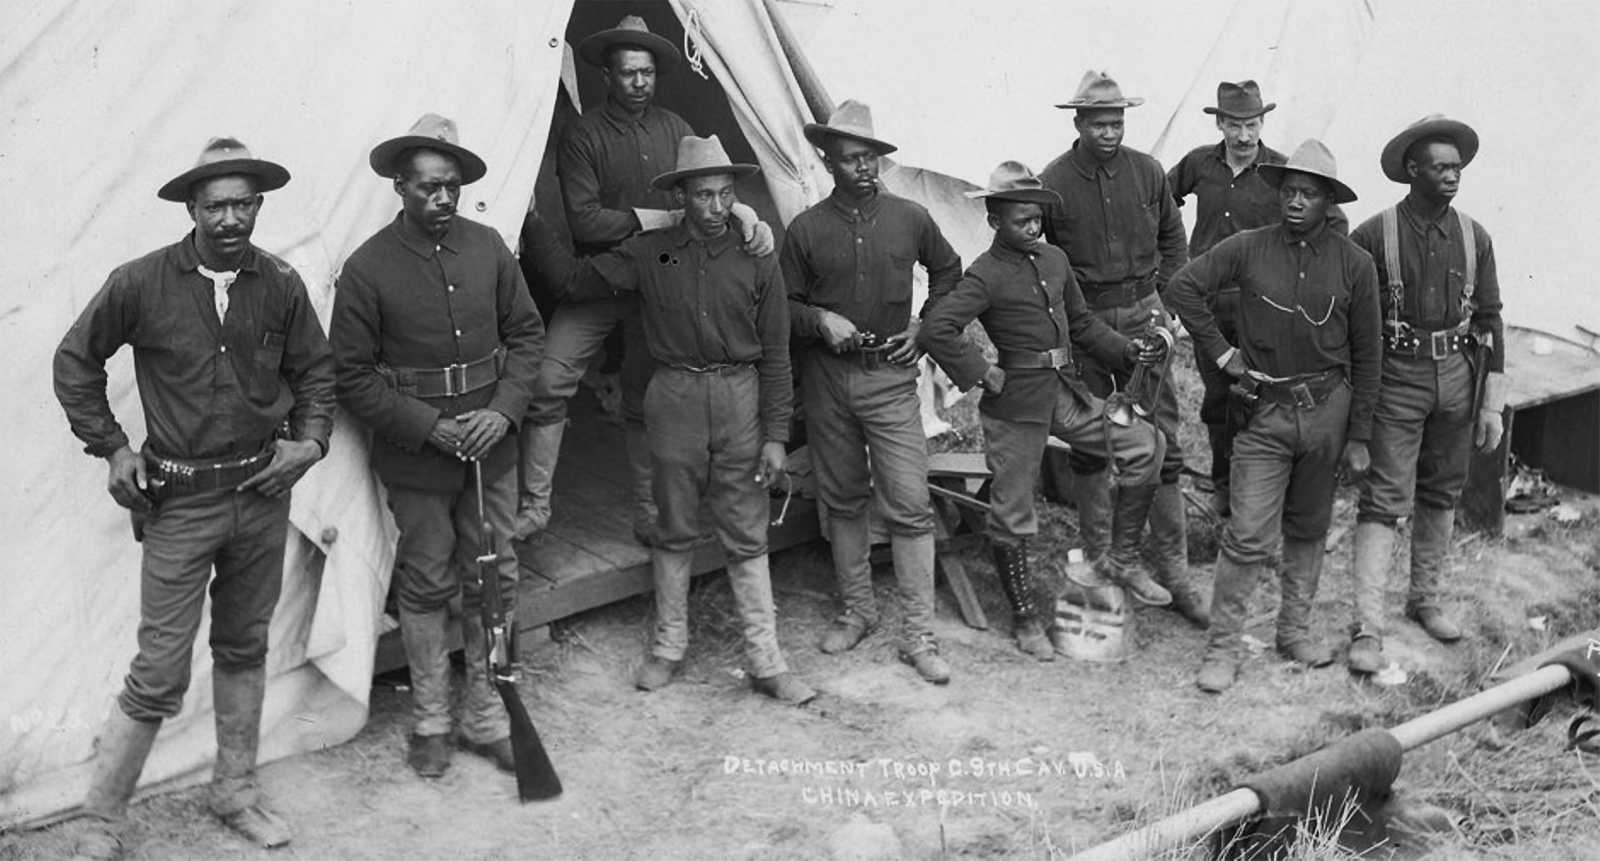 Black and white photo of African American soldiers standing outside their tent in uniform, some holding rifles